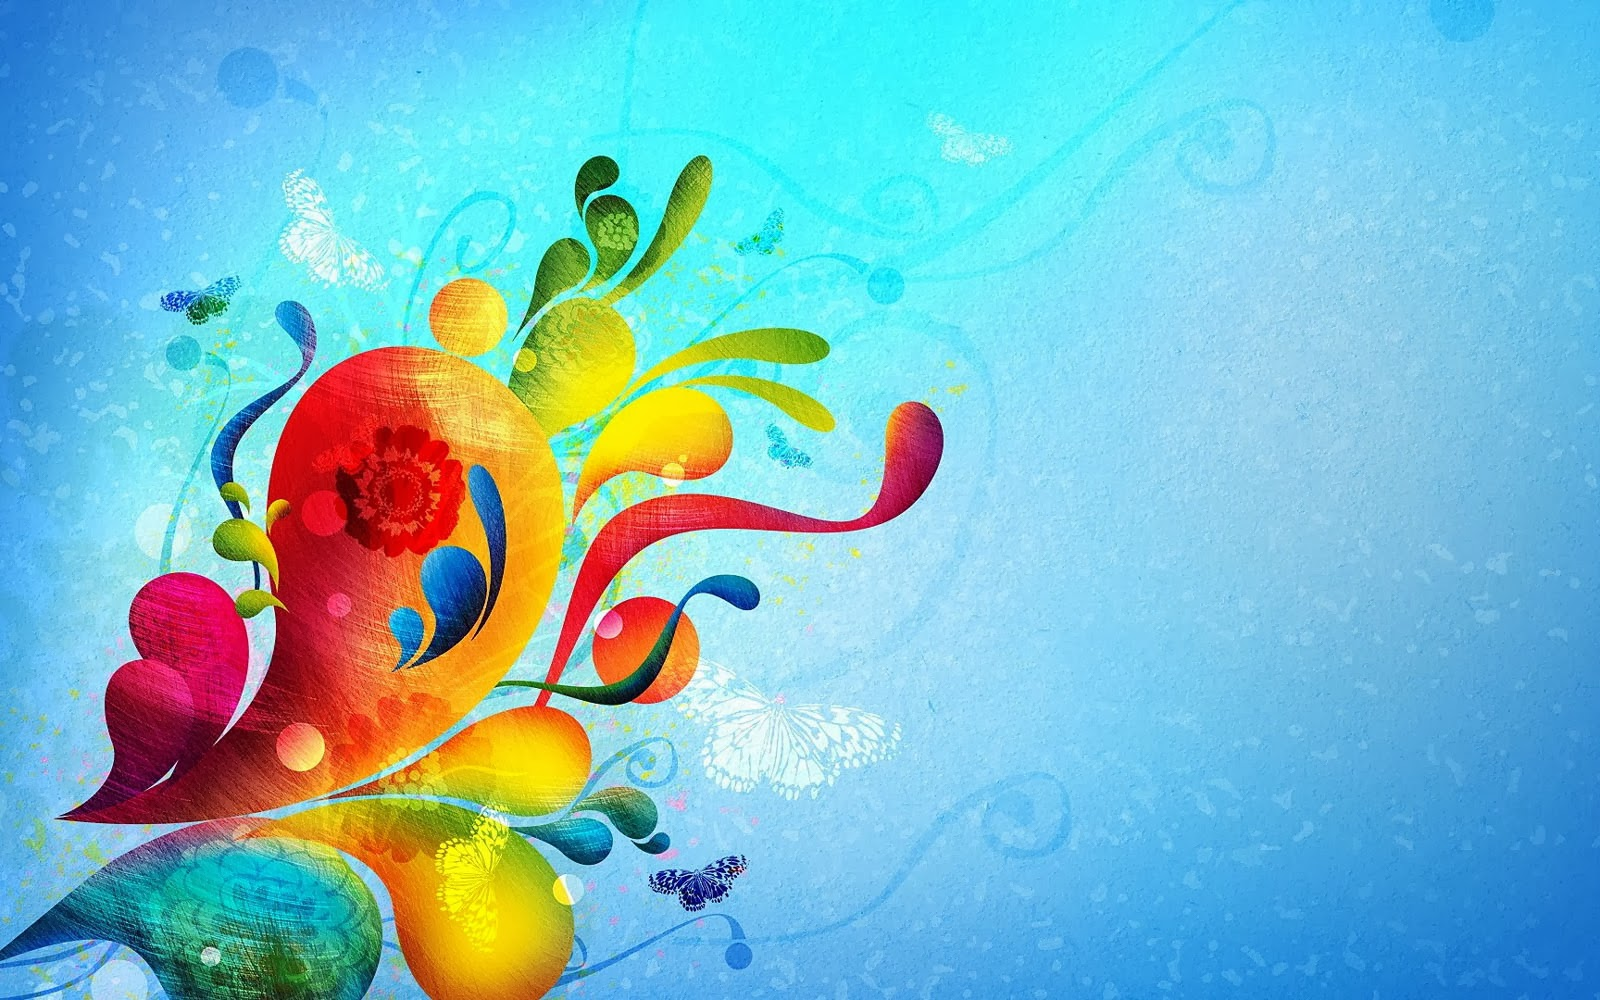 3d Animated Gif Wallpapers Wallpapers Colorful Swirls Wallpapers